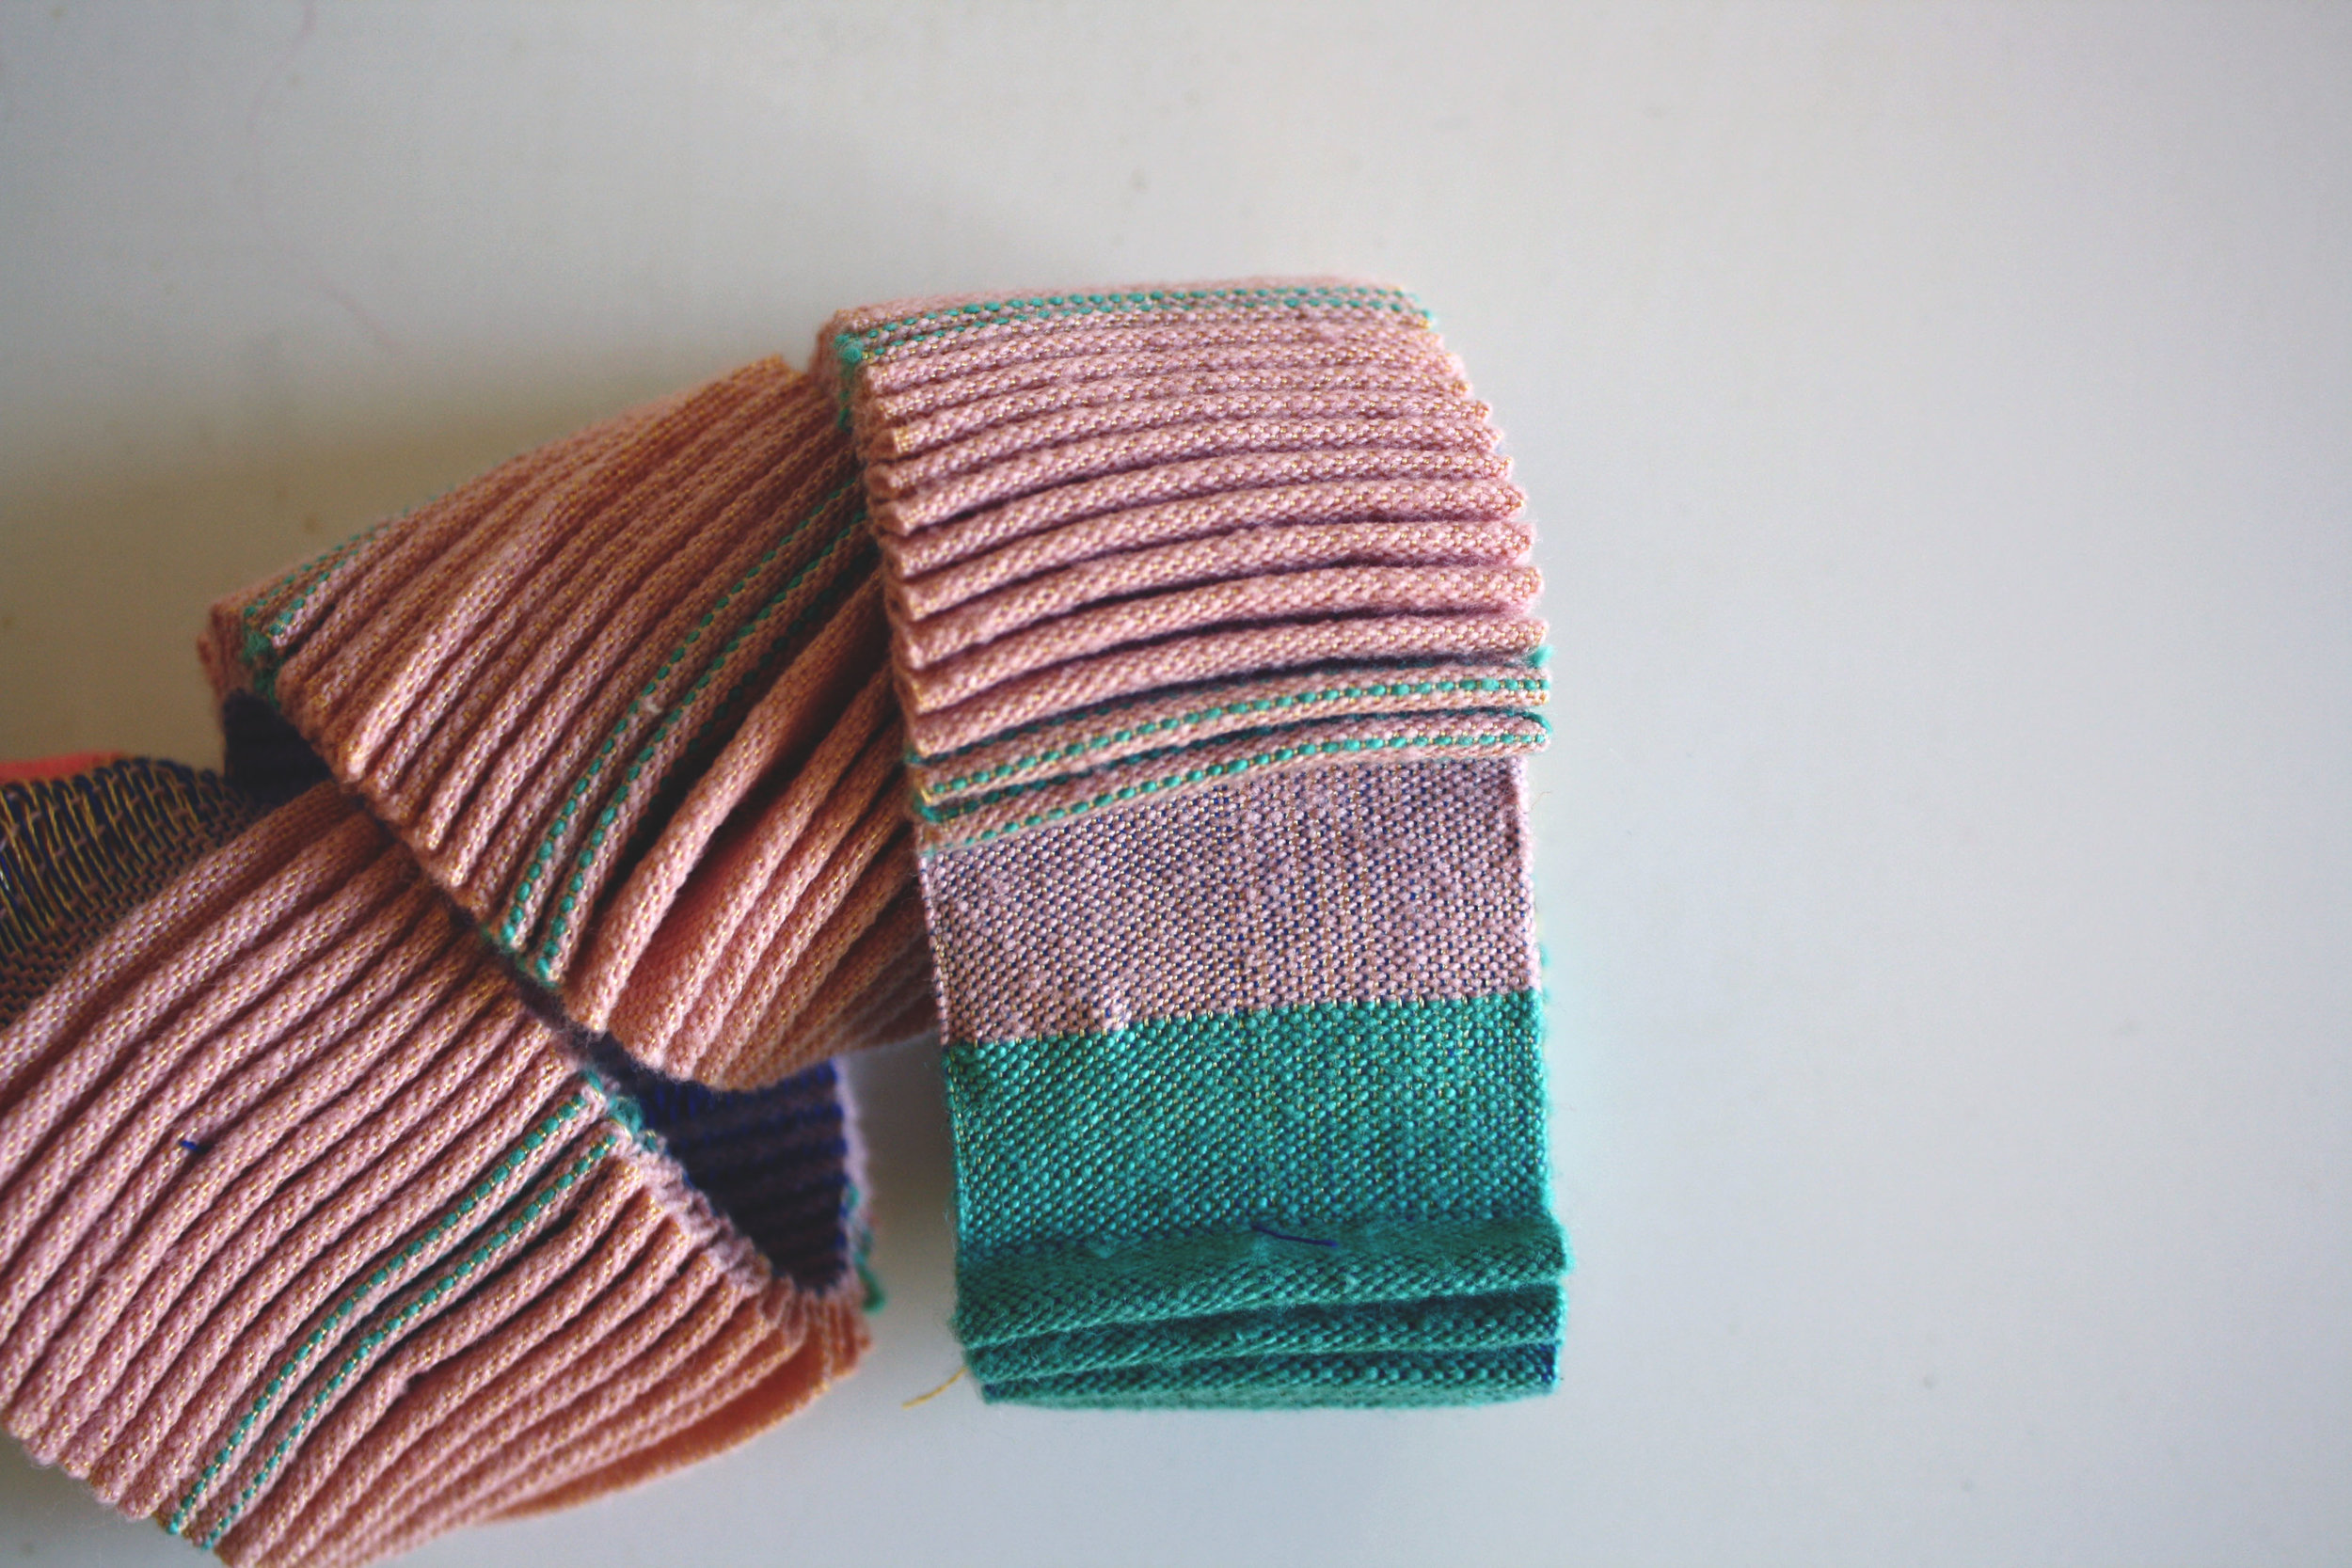 Handwoven Pleats / Ritual and Practice